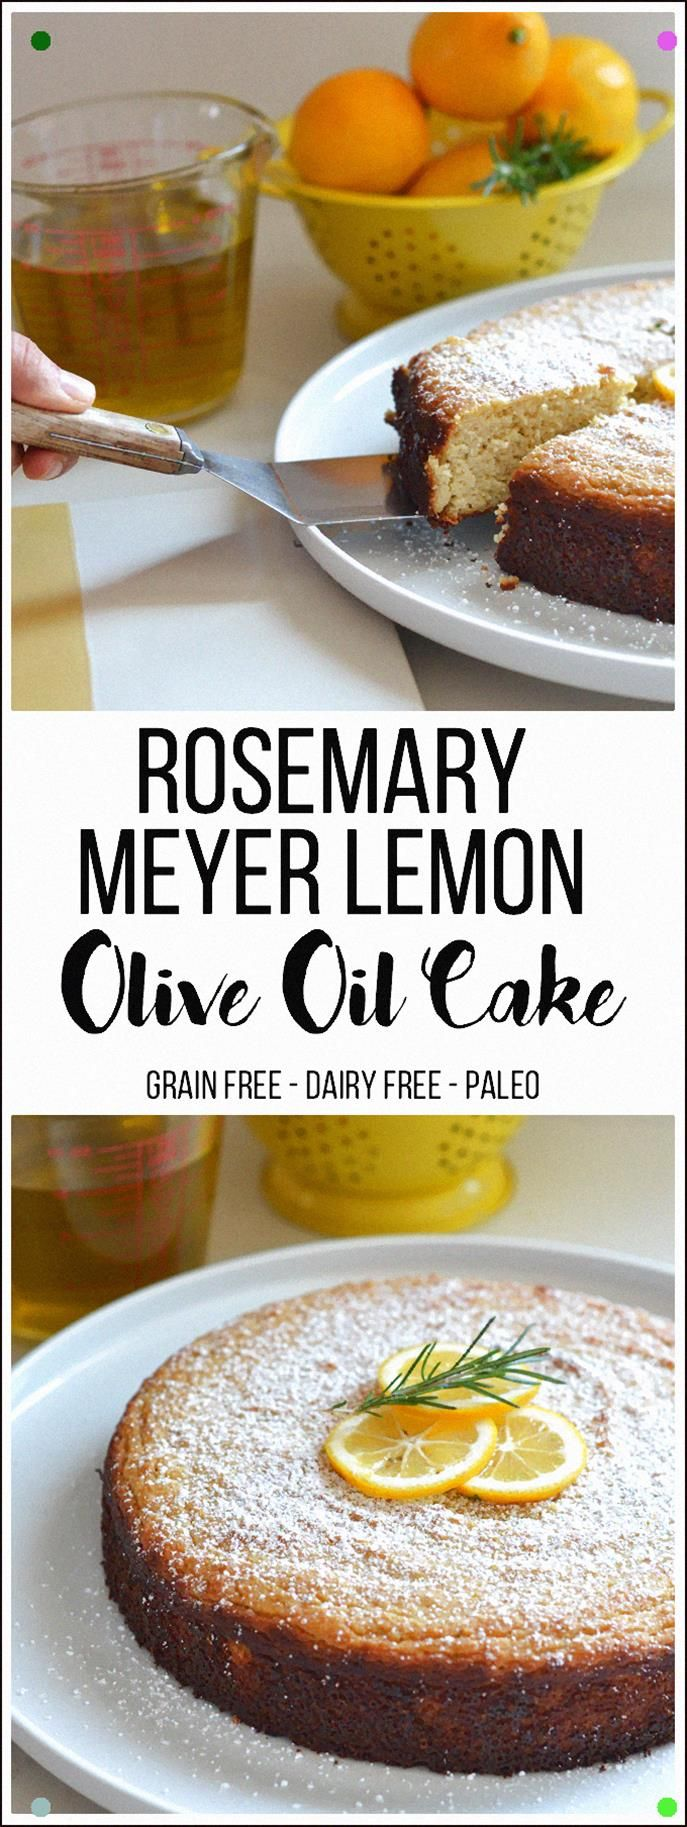 This Rosemary Meyer Lemon Olive Oil Cake Is Grain Free, Refined Sugar Free And D…